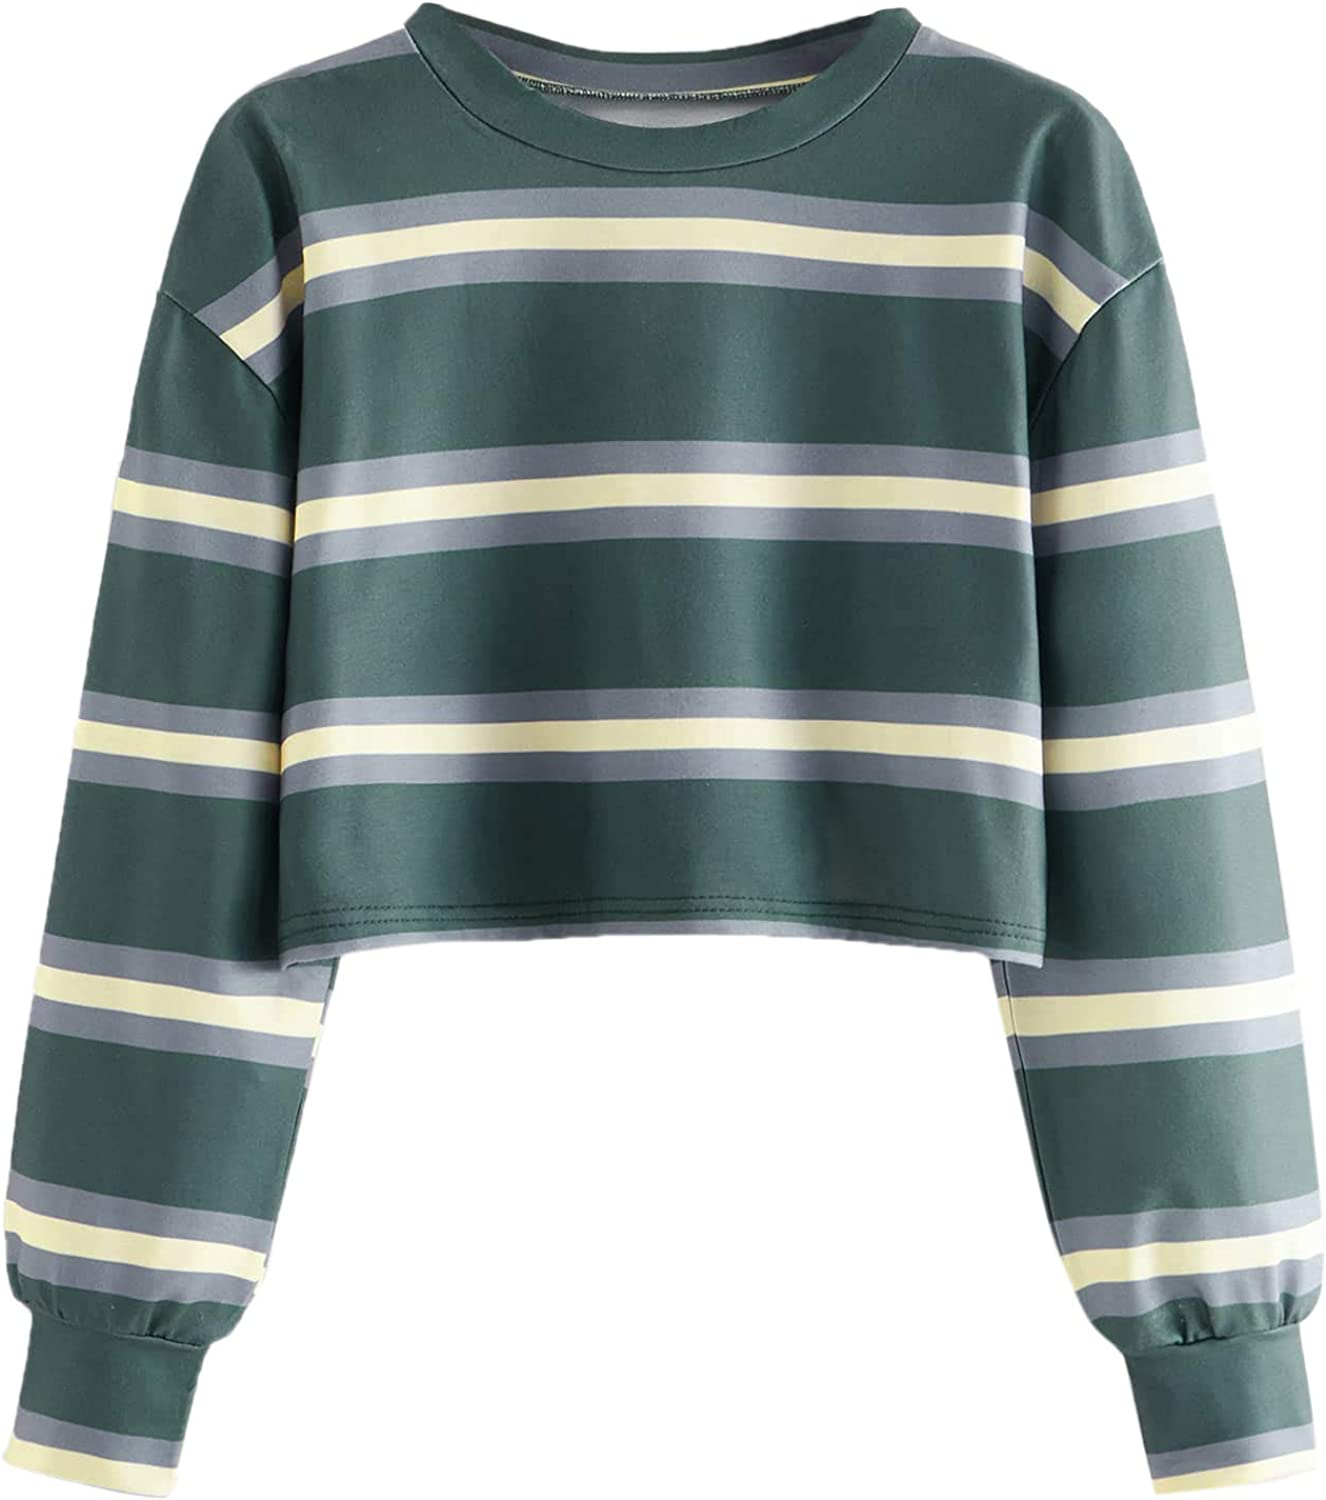 SweatyRocks Selling Women's Casual Long Sleeve T-Shirt Sales for sale Striped C Cropped